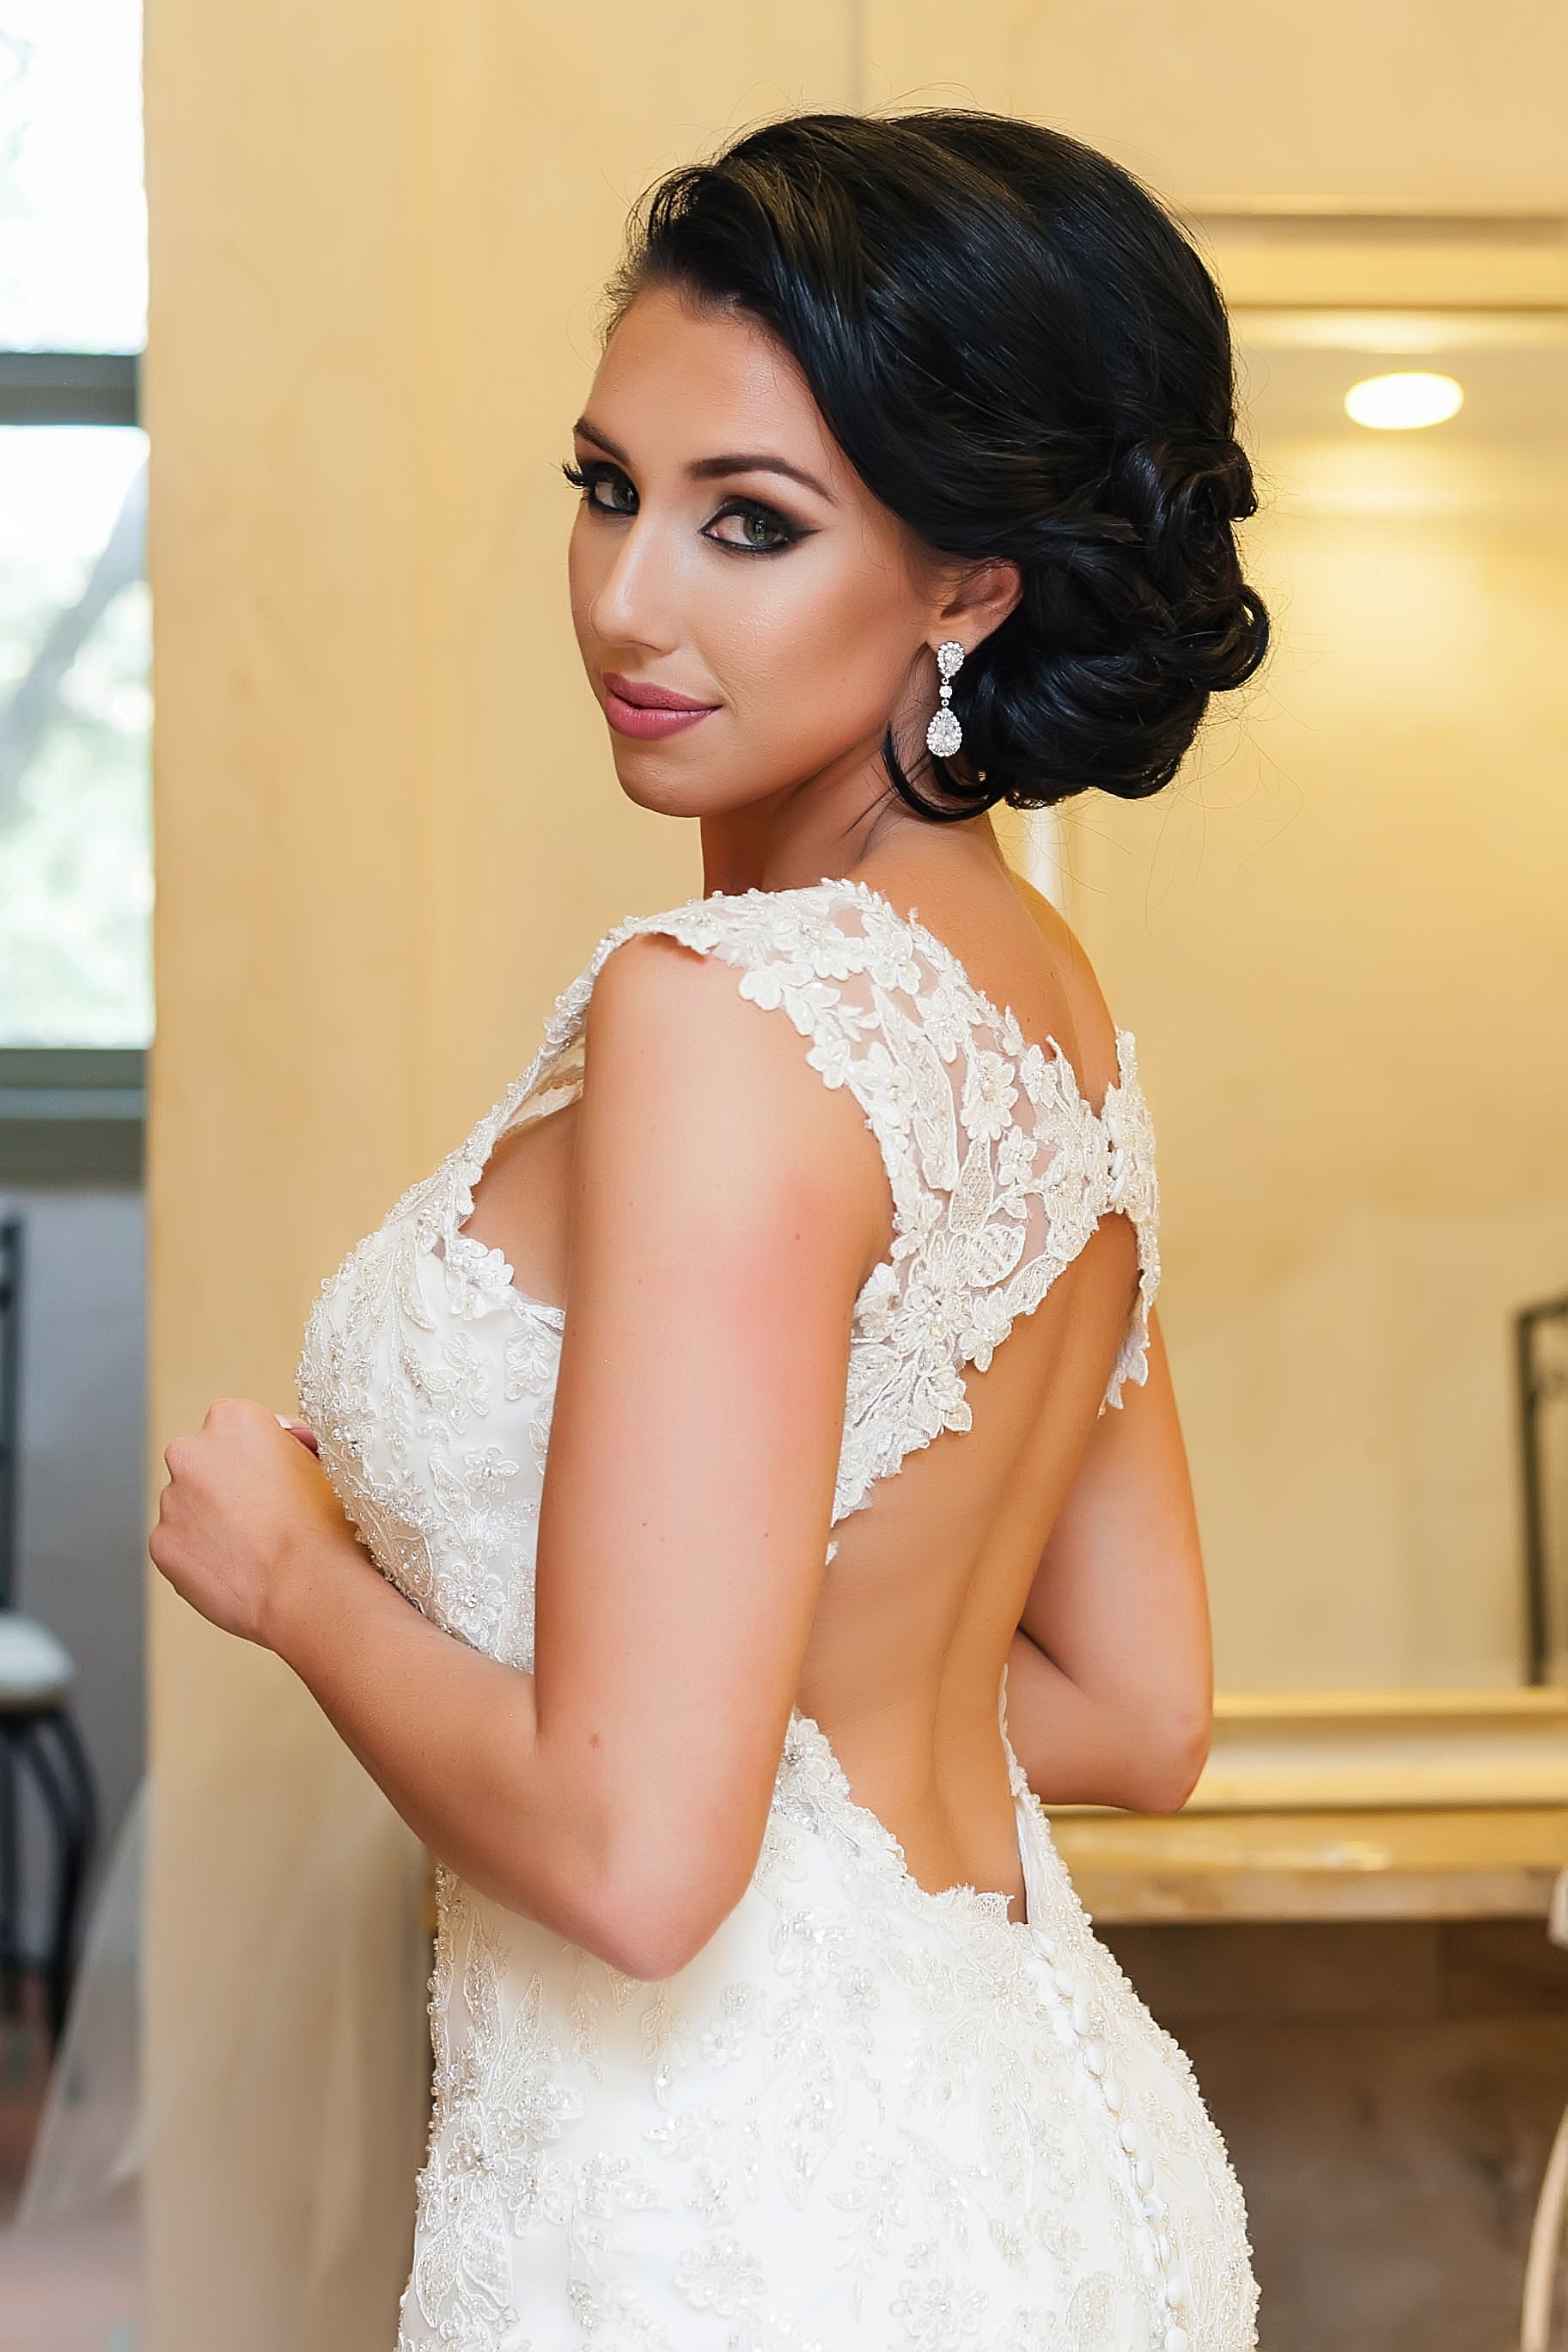 Bridal Beauty Services Austin Texas Molly Makeup And Hair